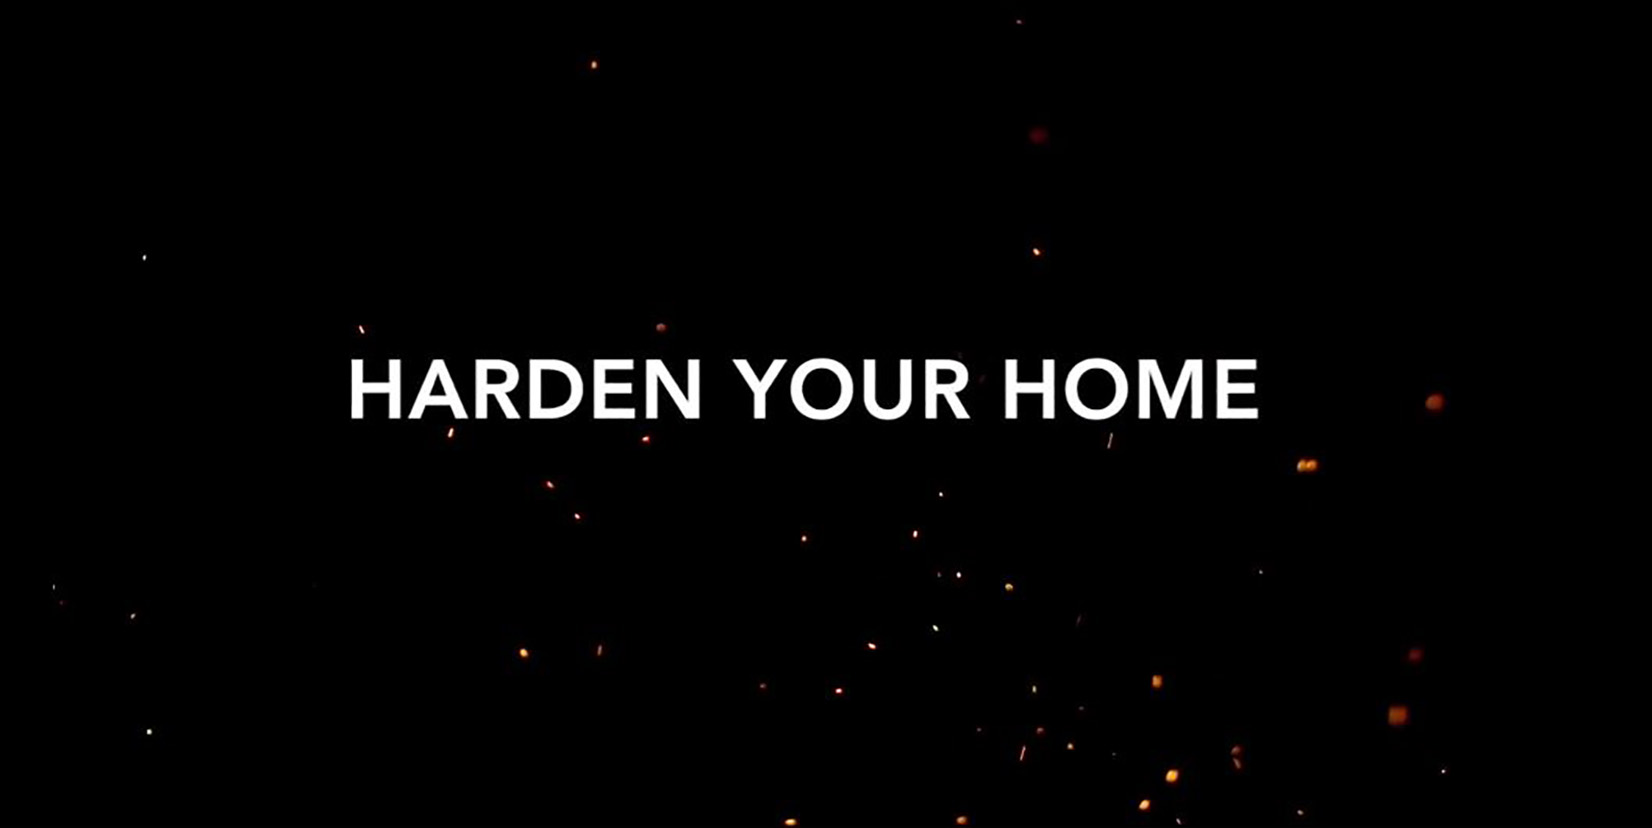 harden your home intro photo.